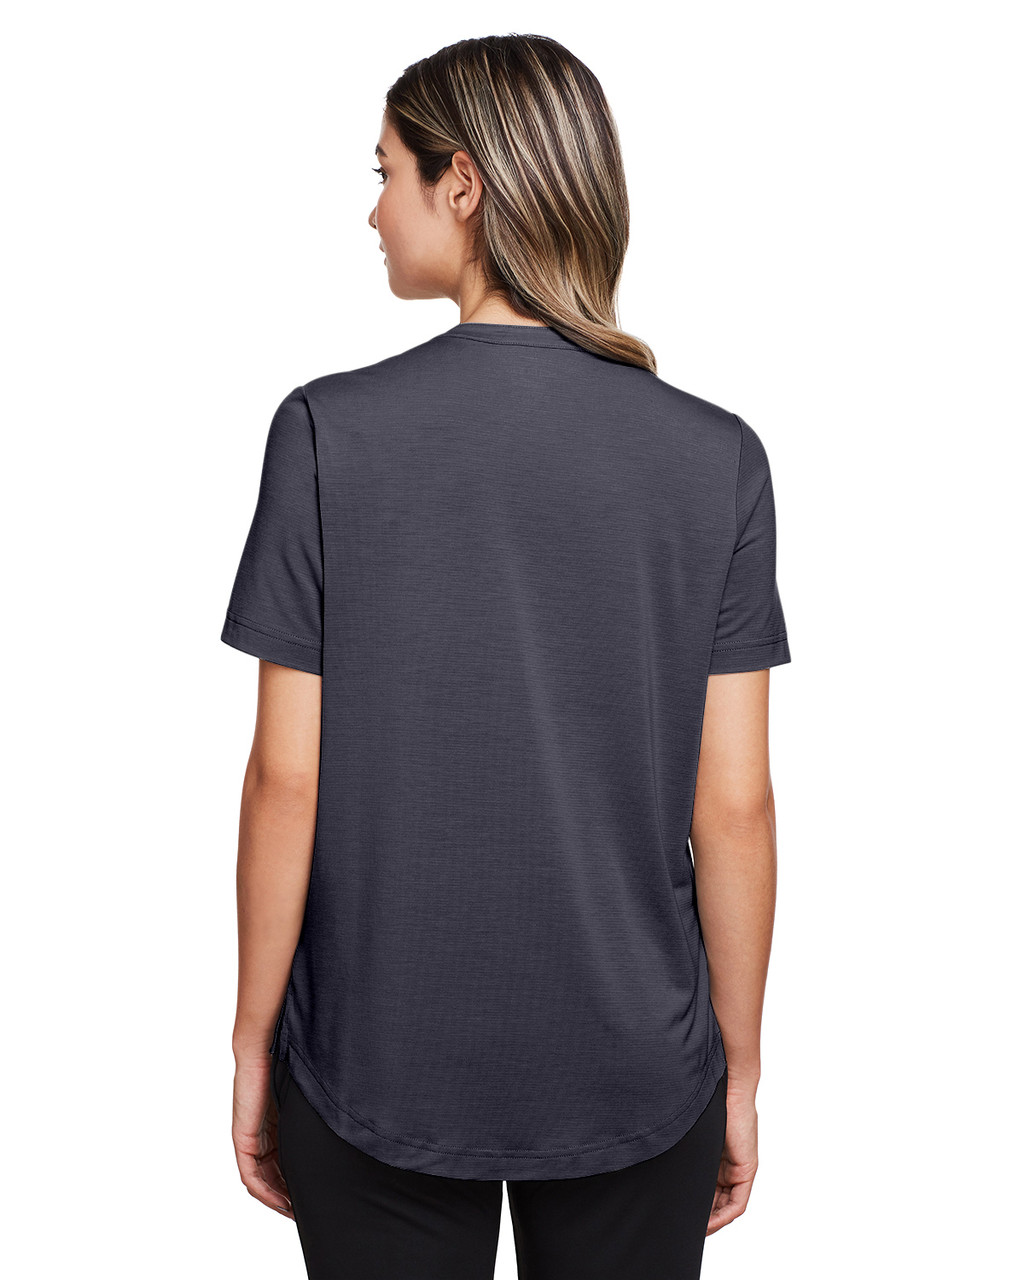 Carbon - Back, NE100W North End Ladies' Jaq Snap-Up Stretch Performance Polo | BlankClothing.ca